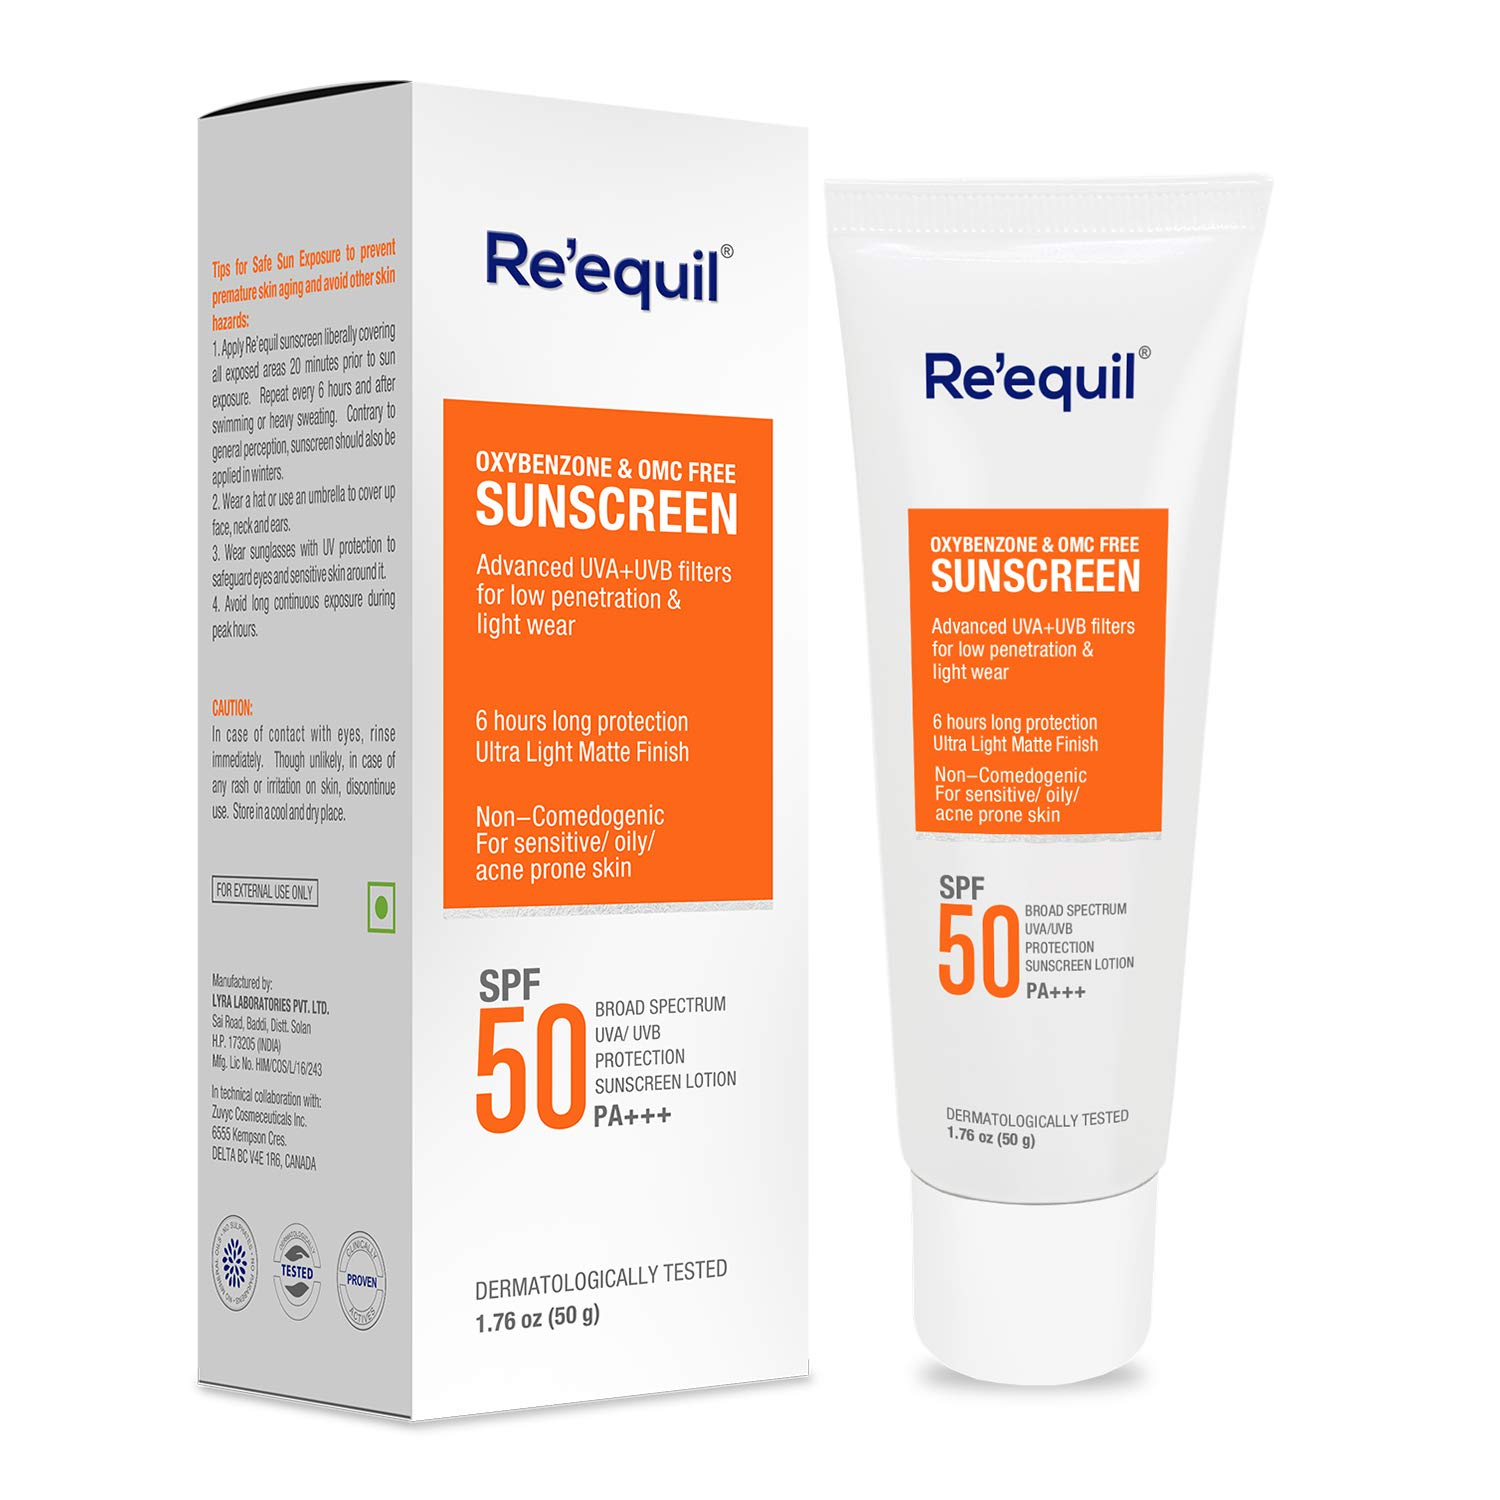 RE' EQUIL Oxybenzone and Zero-Omc Sunscreen for Oily, Sensitive and Acne Prone Skin, SPF 50 PA+++ - 50 g product image